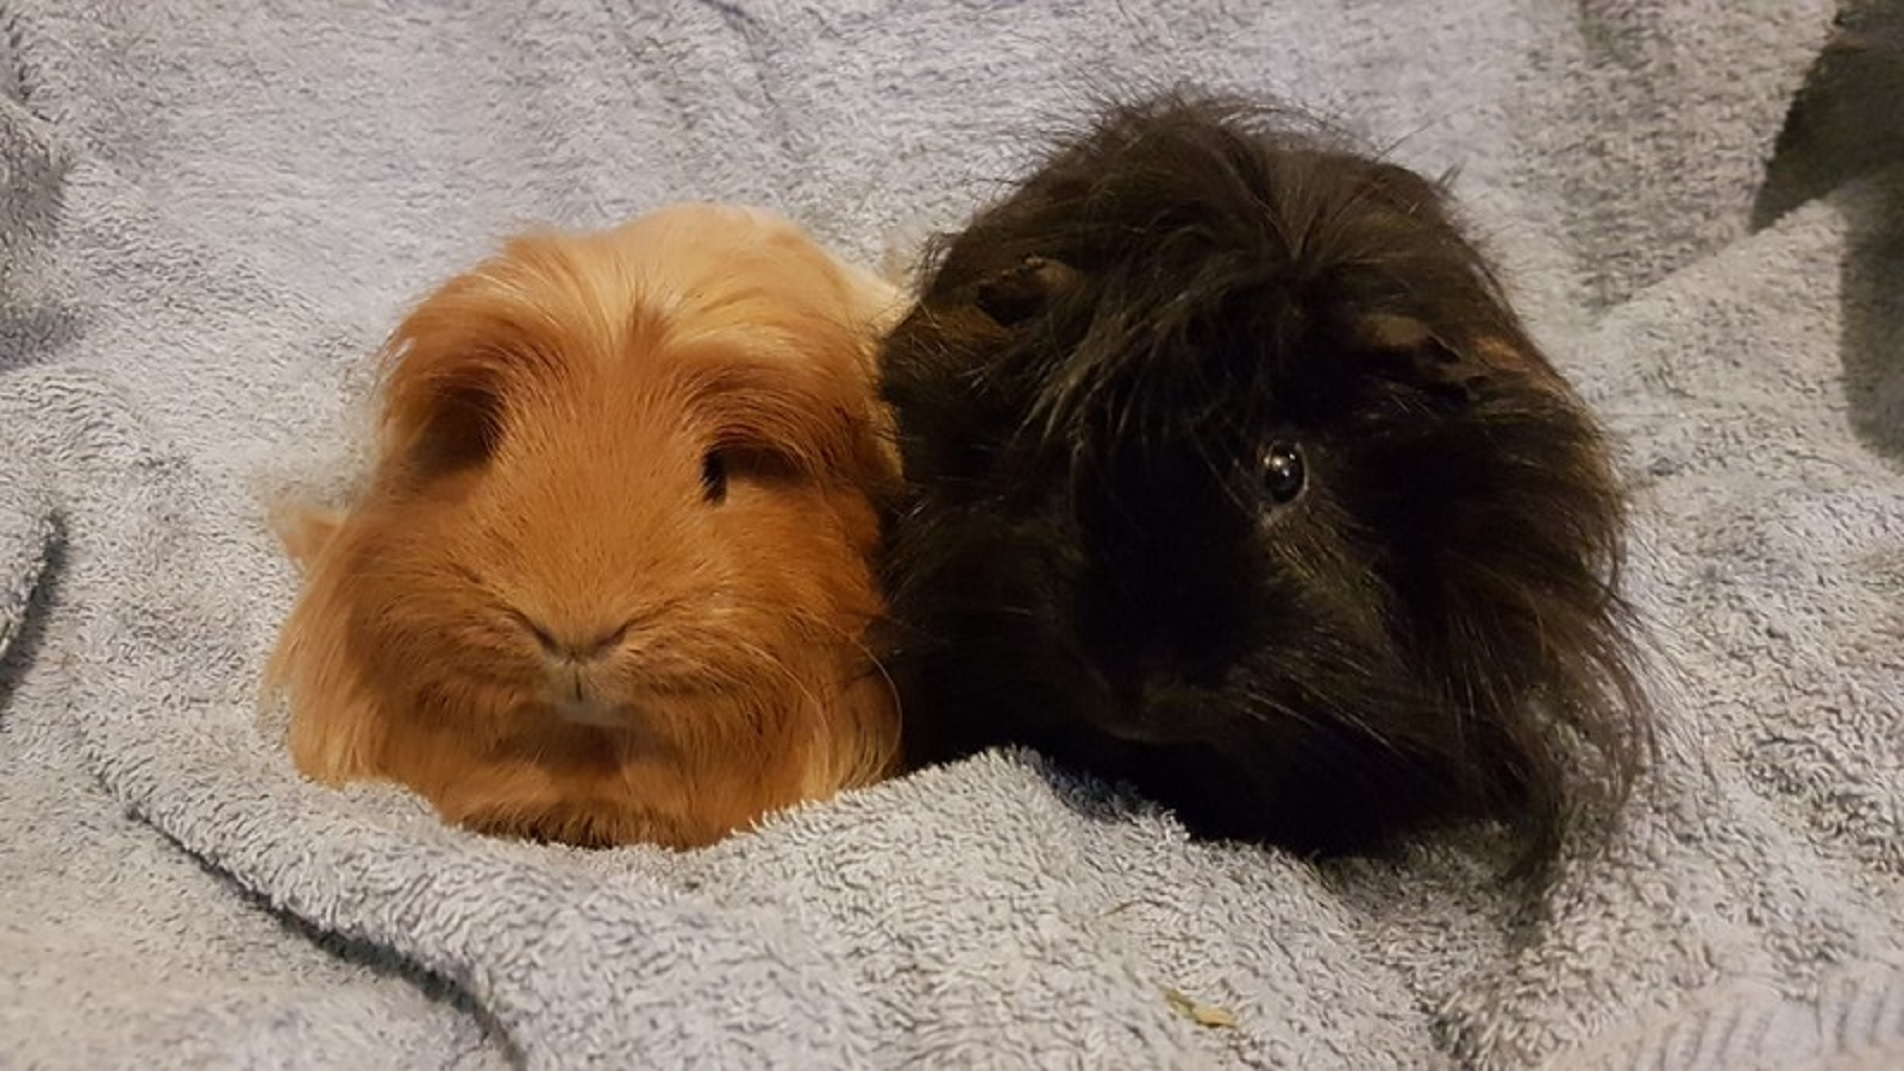 Coco & Sooty January 16th 2019